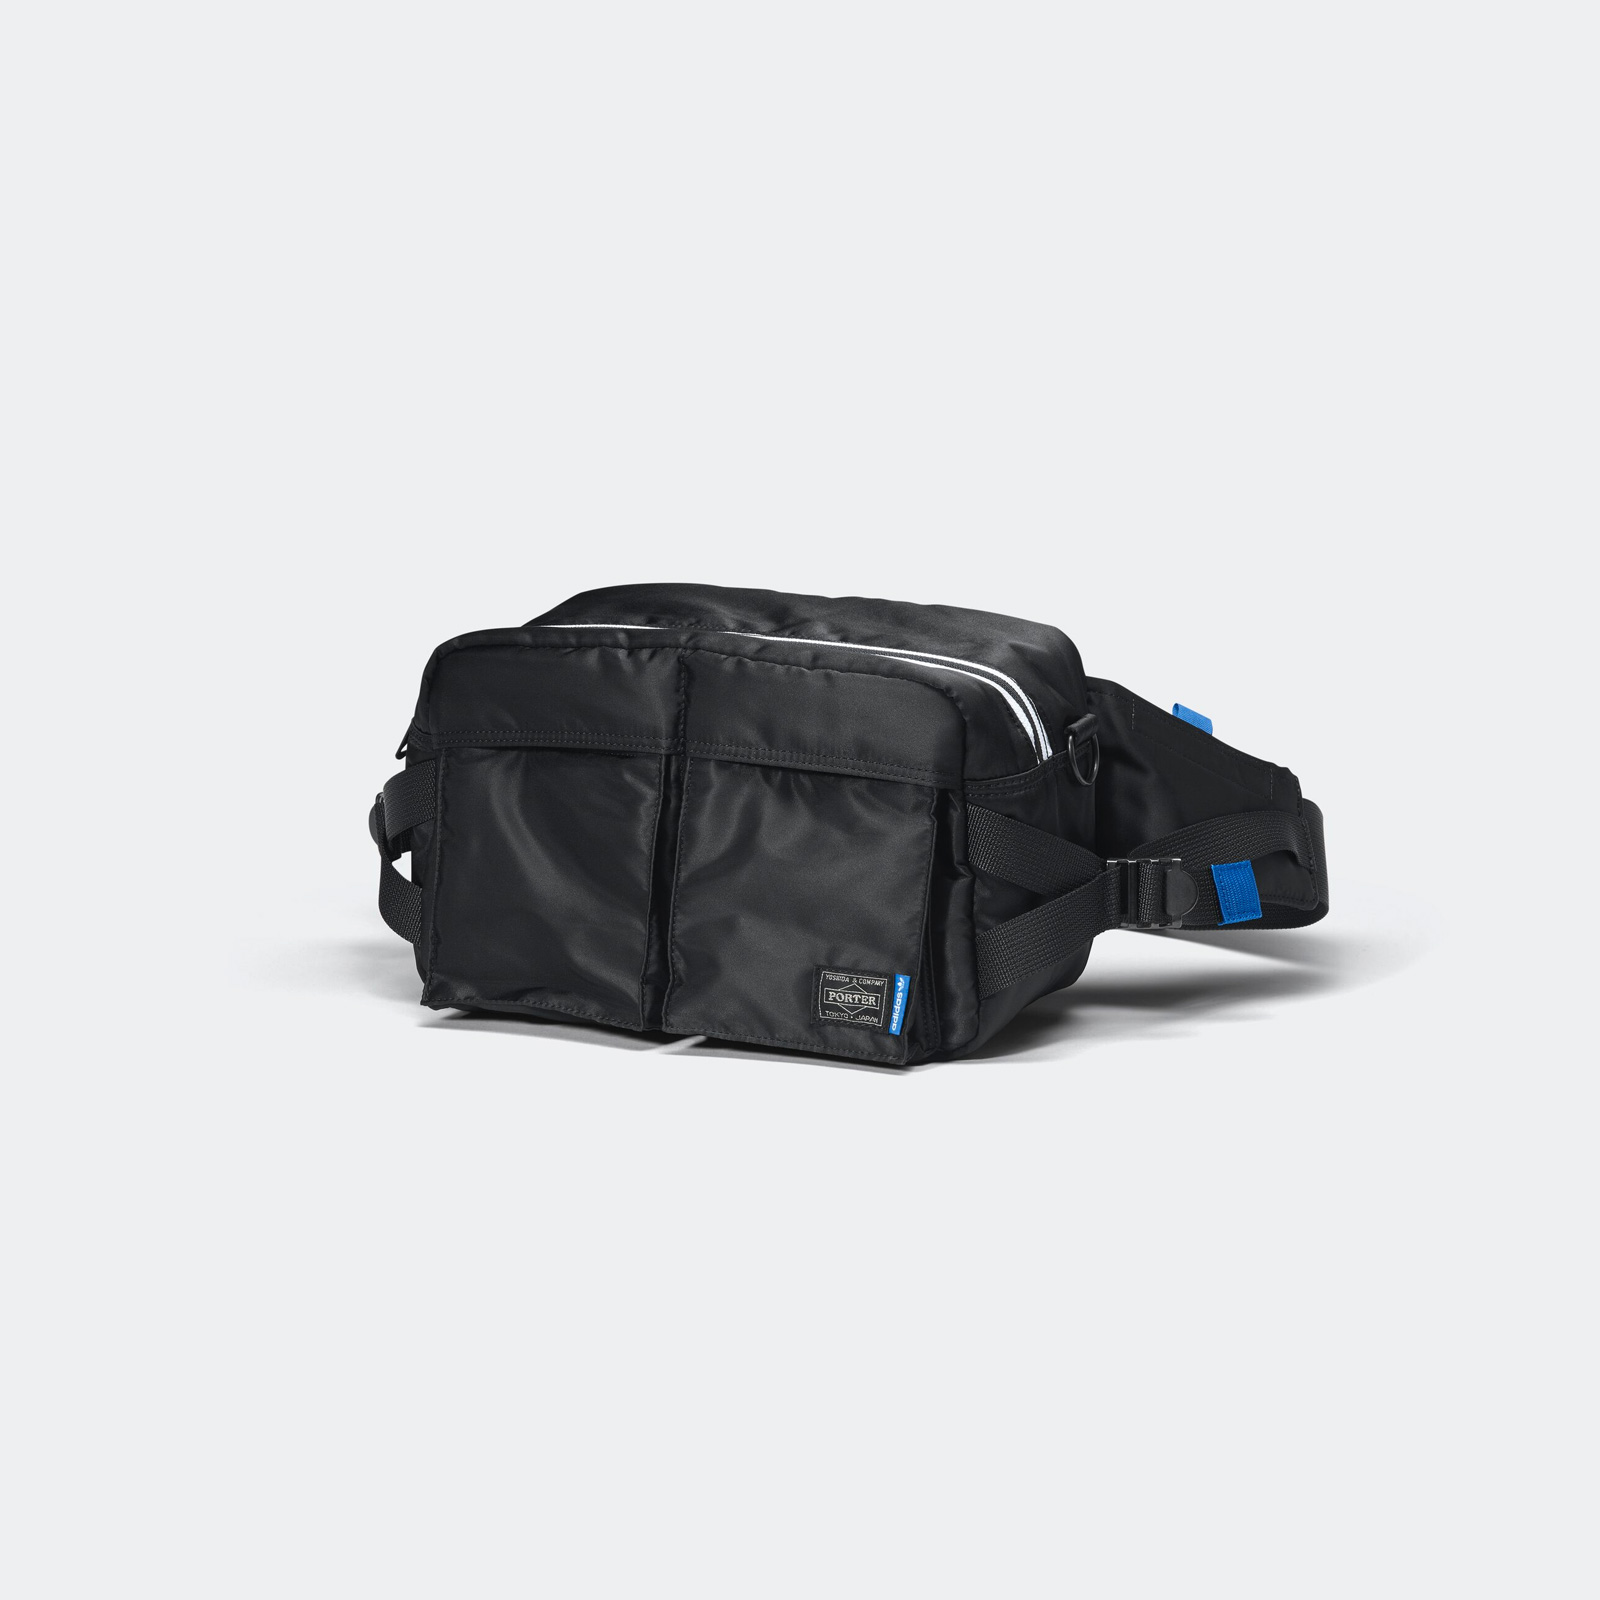 058e067139 adidas 2Way Waist/Shoulder Bag x PORTER - Ci5716 - Sneakersnstuff ...